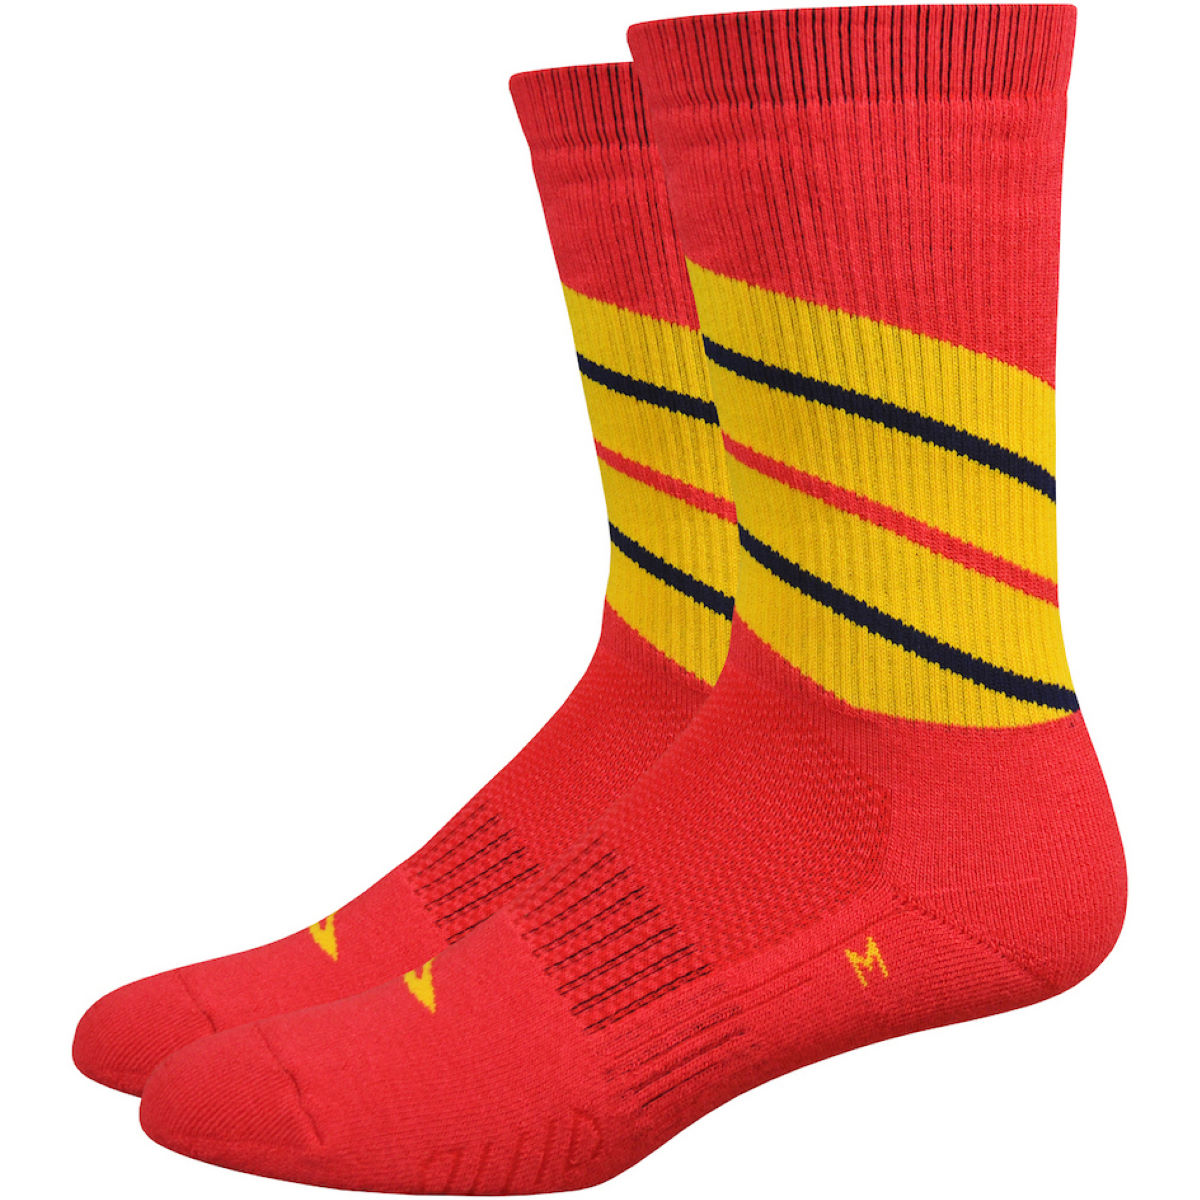 DeFeet DeFeet Thermeator Twister Socks   Socks